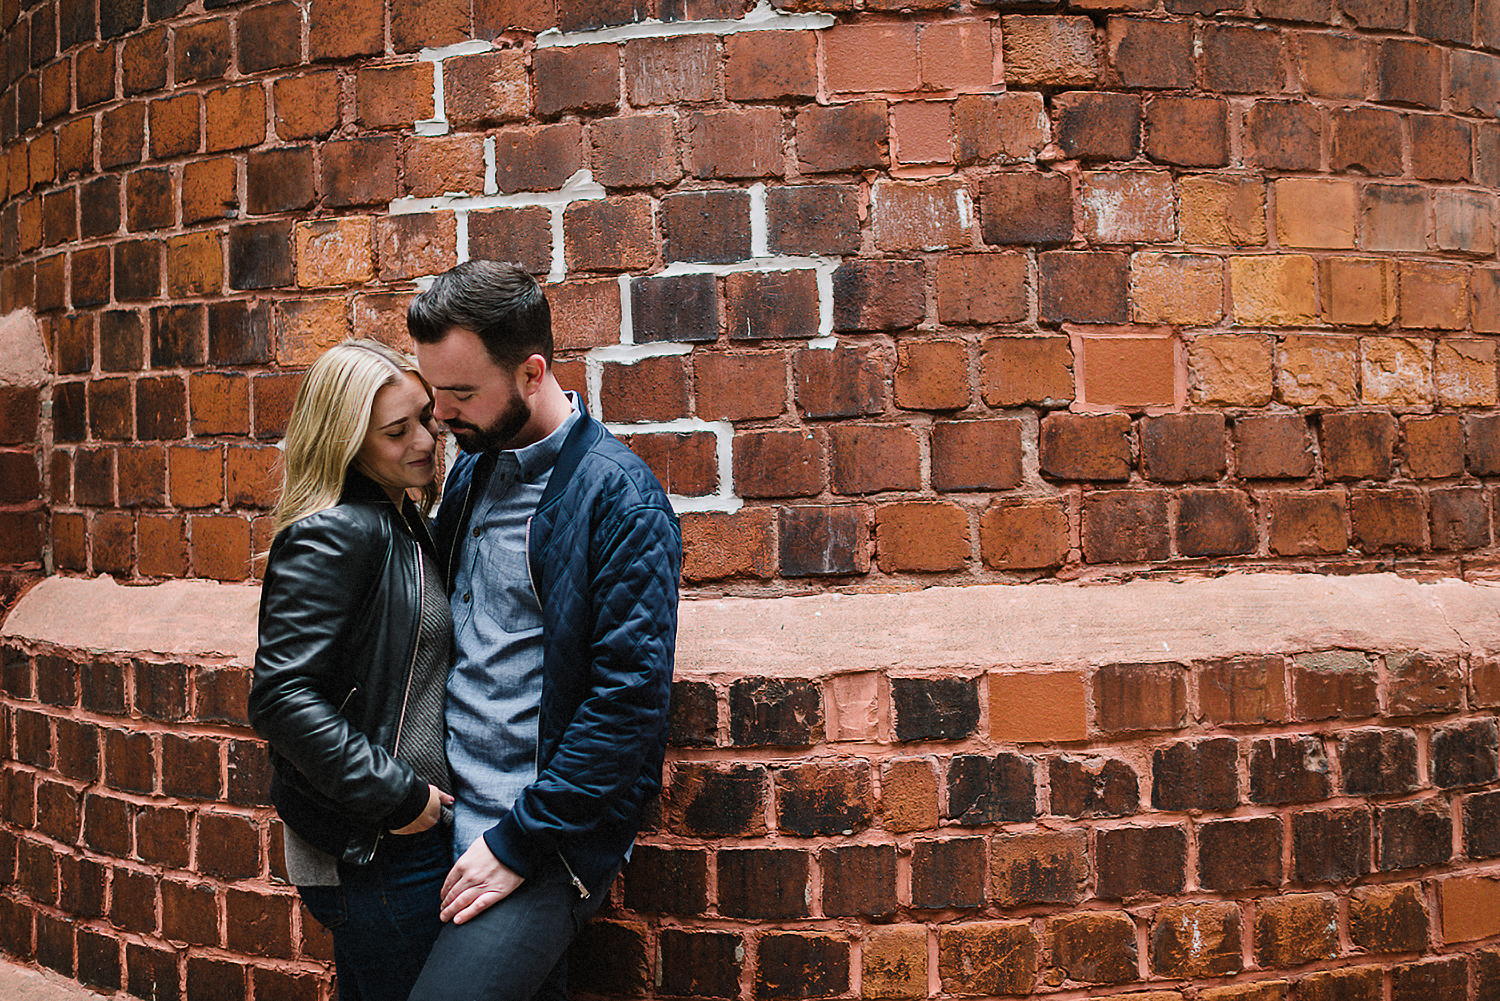 Best-Toronto-Wedding-Photographers-Photographer-Liberty-Villag-Engagement-Session-Wedding-Photography_-Hipster-Cool-Fashion-Editorial-Trendy-Contemporary-Analog_Red-Bricks.jpg